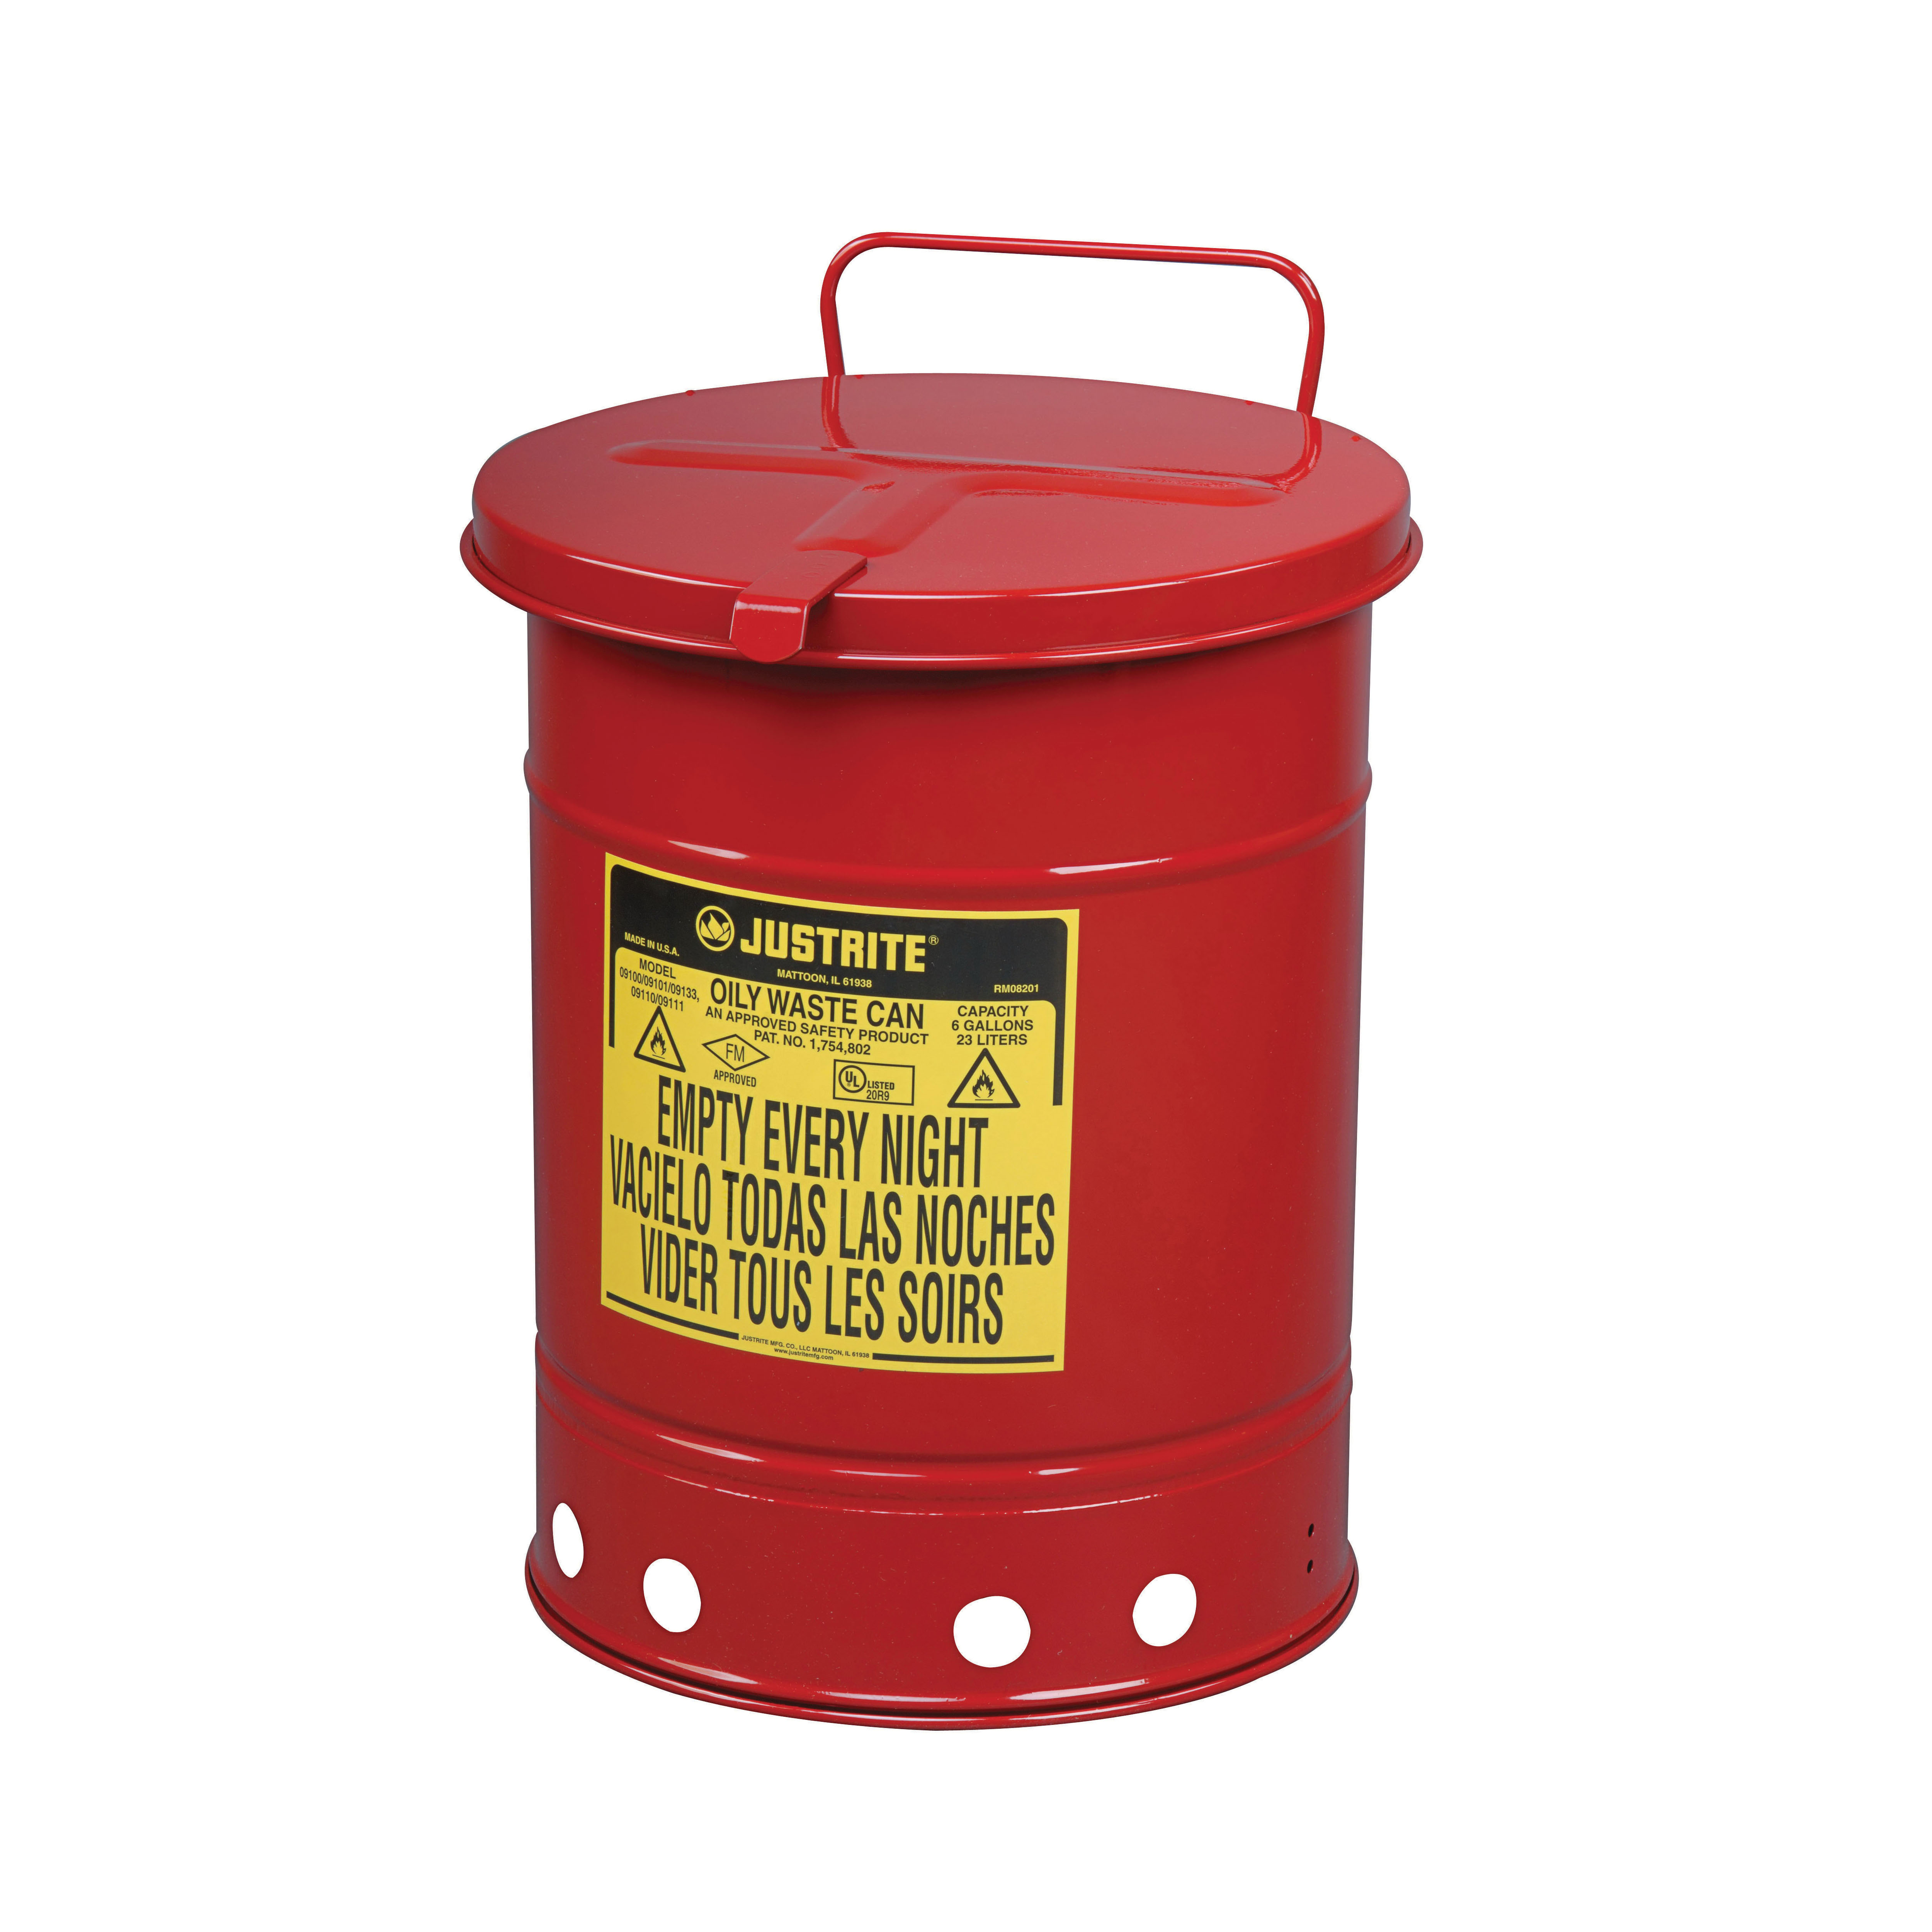 Justrite® 09510 Hand Operated Oily Waste Can, 14 gal Capacity, 16.063 in Dia x 20-1/4 in H, Steel, Red